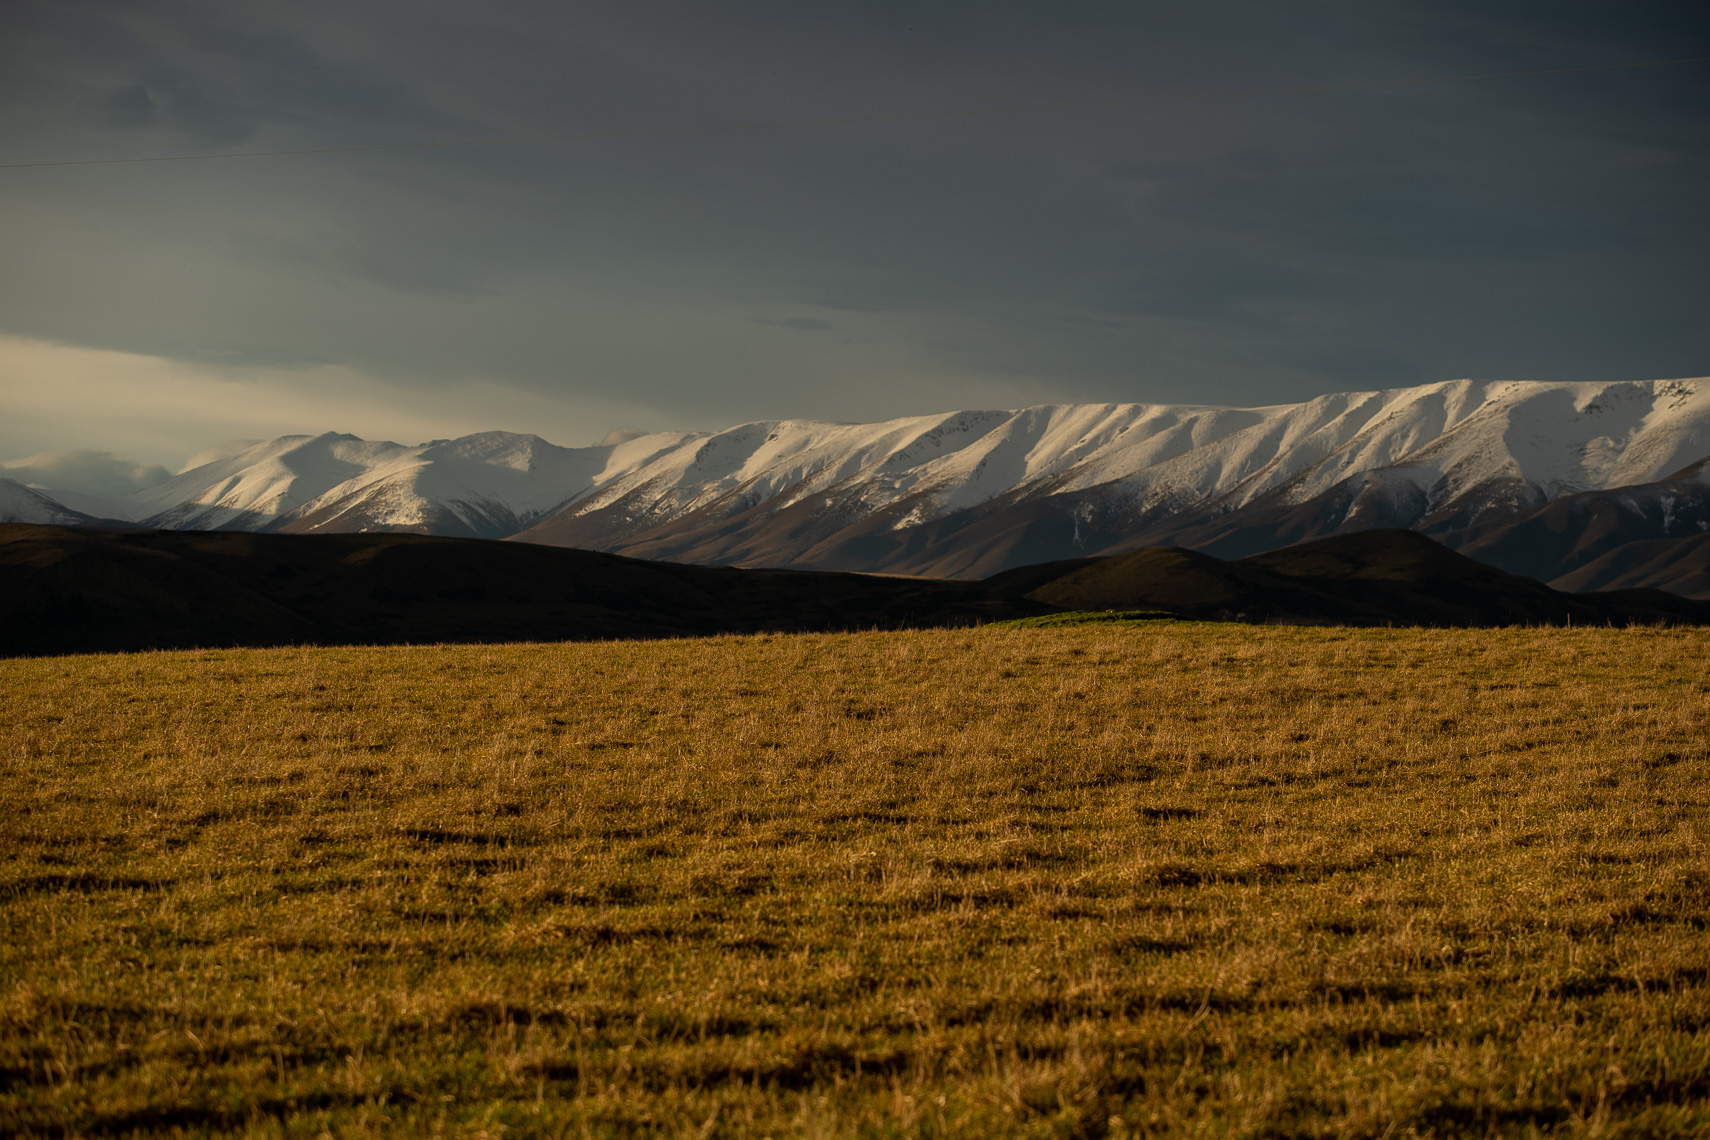 Snow on the Hawkdun range in the Maniatoto by Paul Green Photographer